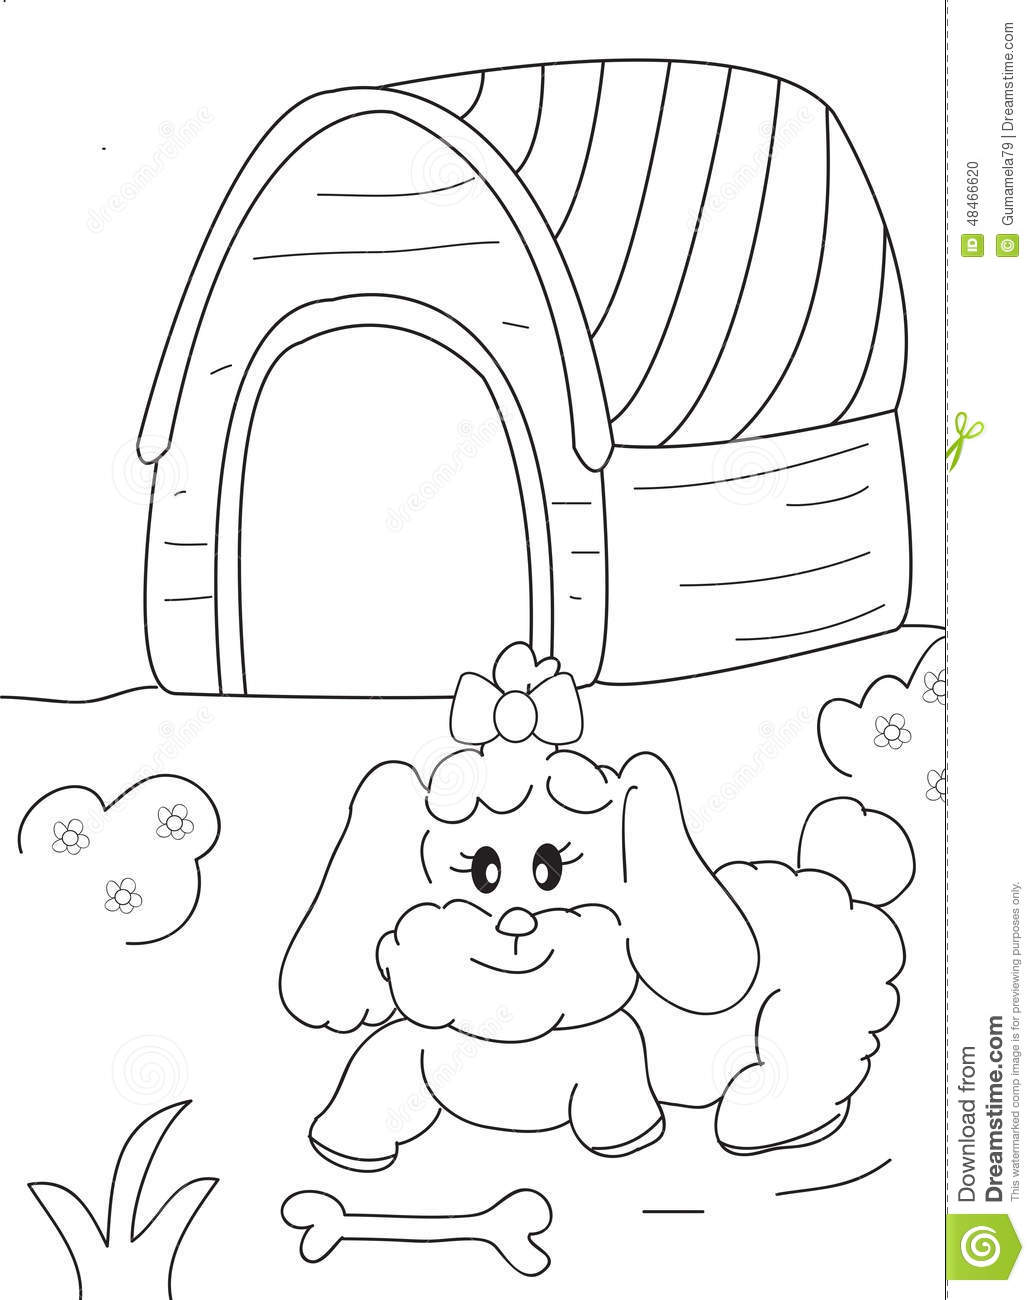 Bone Coloring Page #1